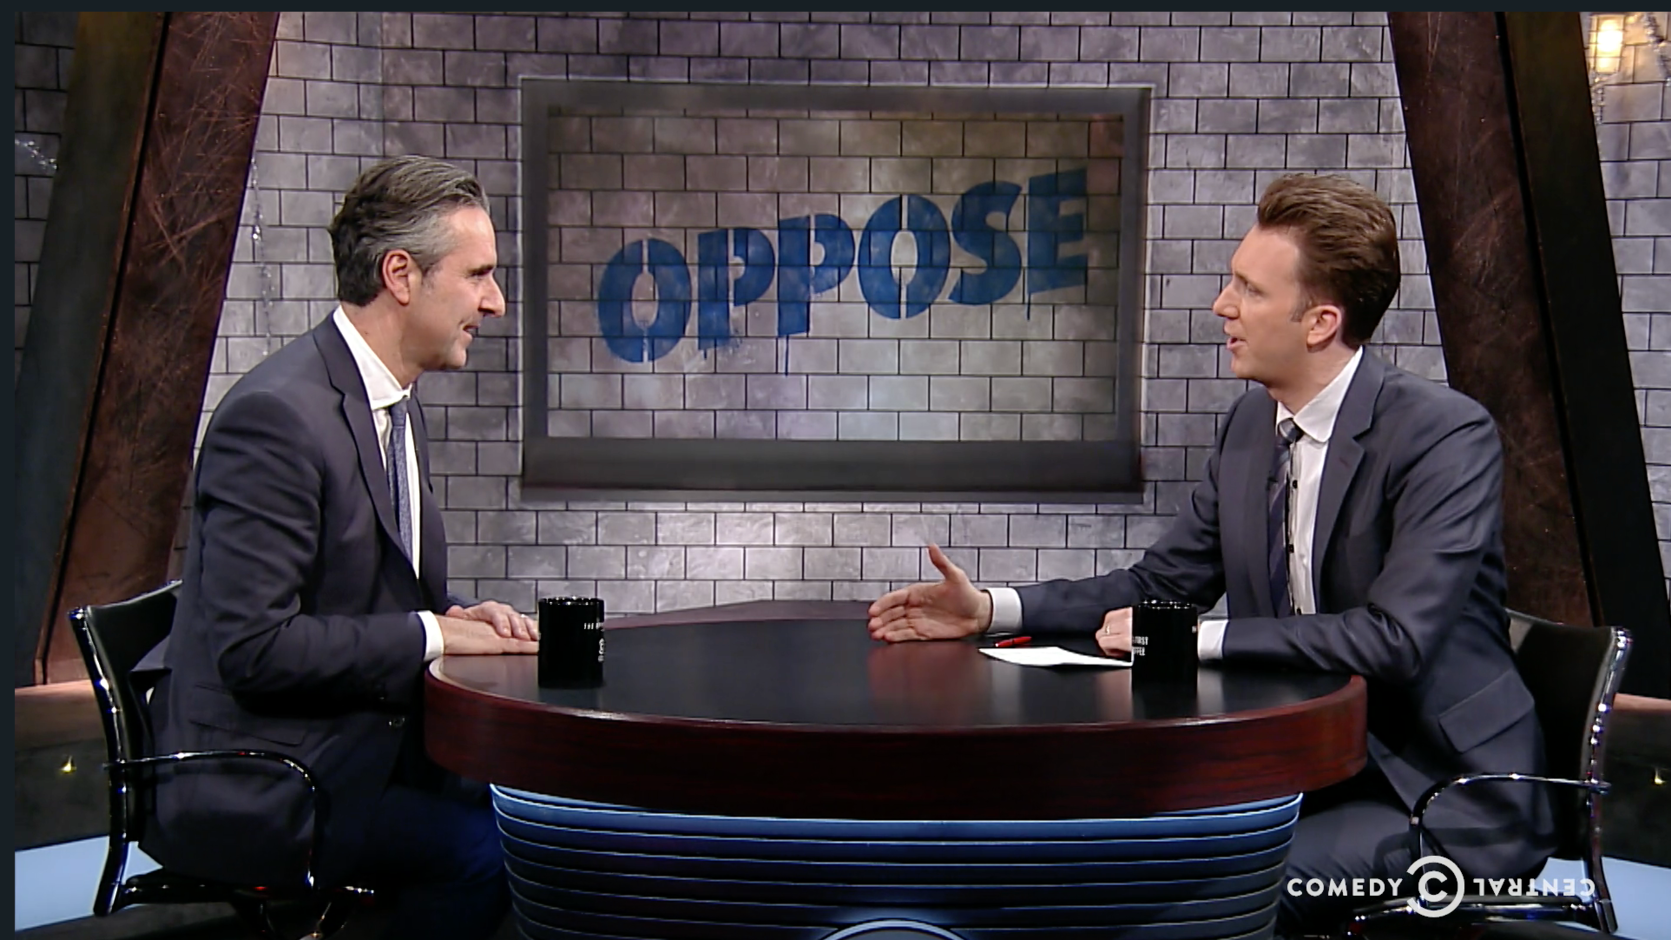 John Della Volpe appears on Comedy Central's The Opposition with Jordan Klepper, to discuss his recent Harvard Kennedy School IOP poll of young Americans and the finding that while they prefer a Democratic Congress, only one-third indicated that the party cares about people like them.